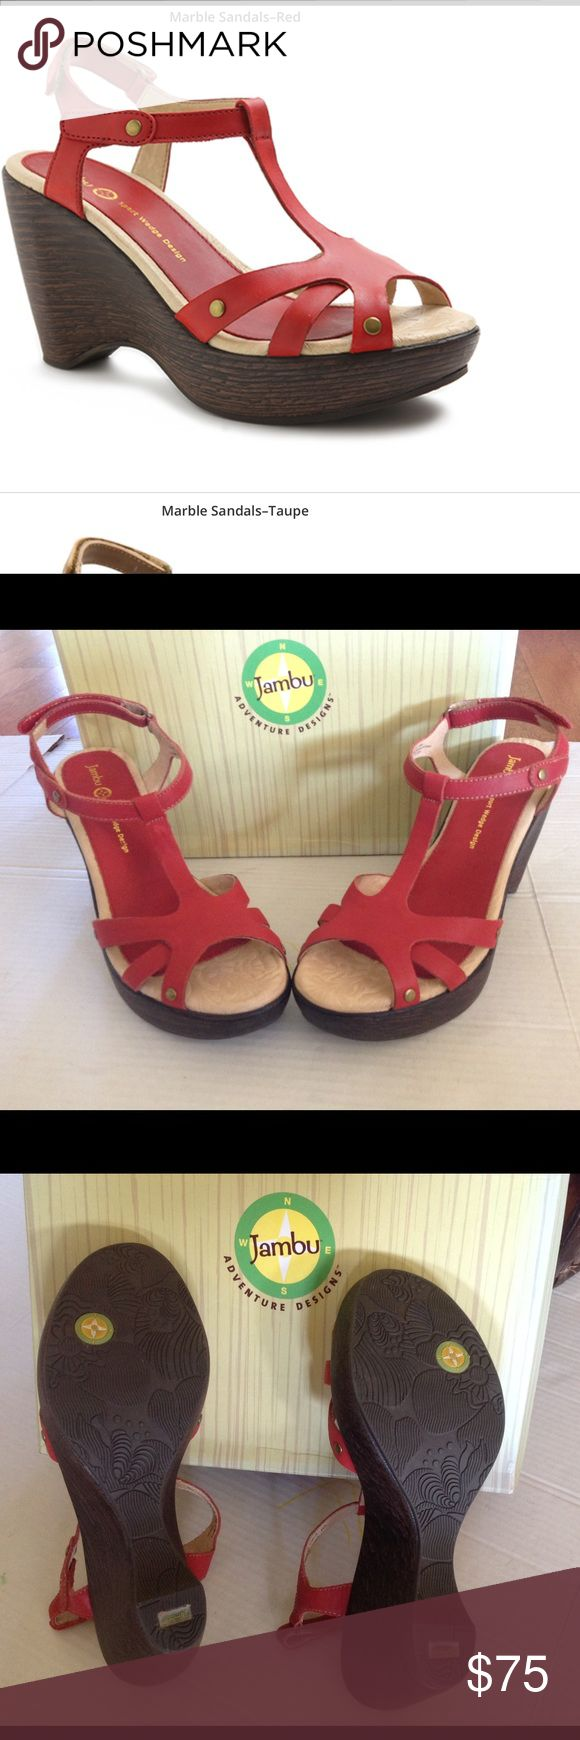 """SALE  OFFER 🆕JAMBU MARBLE  SANDAL (Sz 9) Jambu adventure designs marble red women's sandal . A lightweight T - strap sandal is lifted with a slim wedge and fitted with a contoured memory - foam footbed for all day comfort . The approximate heel height is 3 3/4 """" .It has adjustable strap with hook and loop closure . ITS BRAND NEW WITH TAG AND COMES WITH ITS ORIGINAL BOX . Jambu Shoes Sandals"""